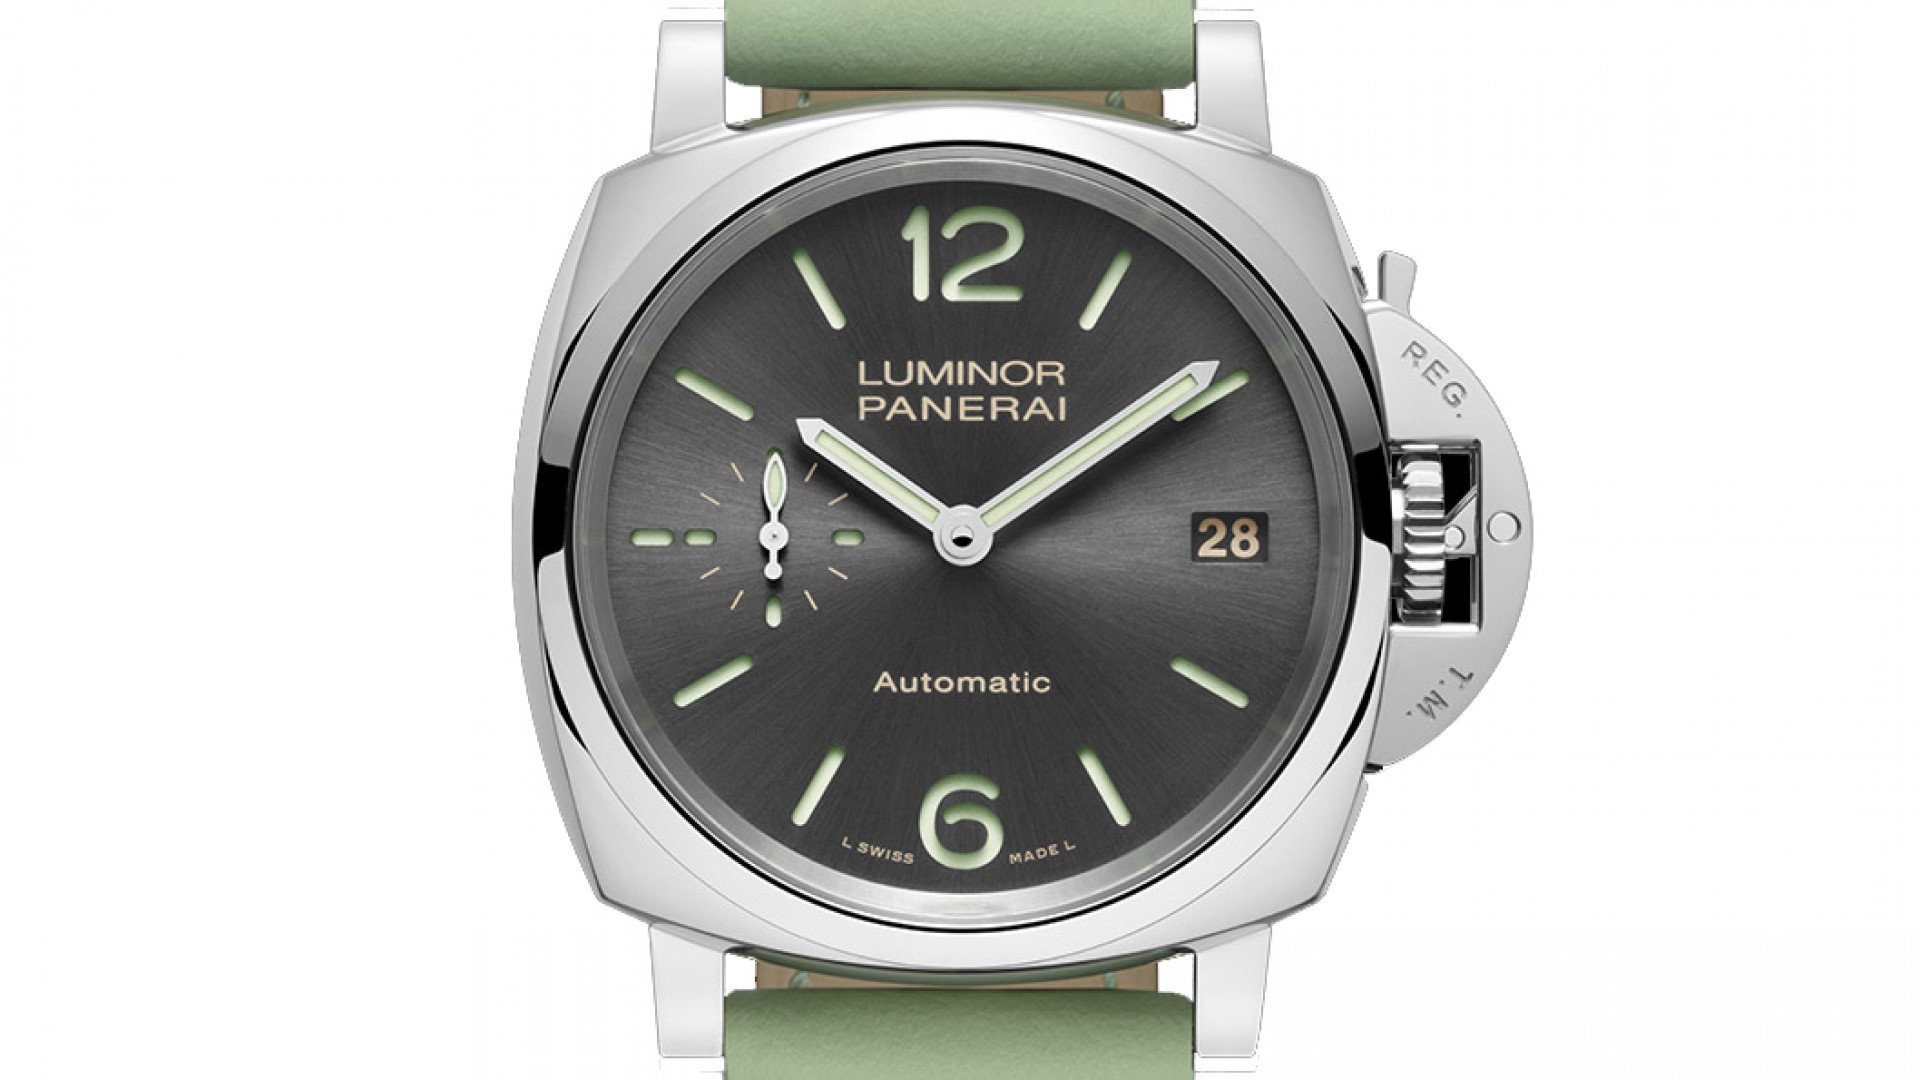 Panerai Luminor Due 38mm watch, SIHH 2018